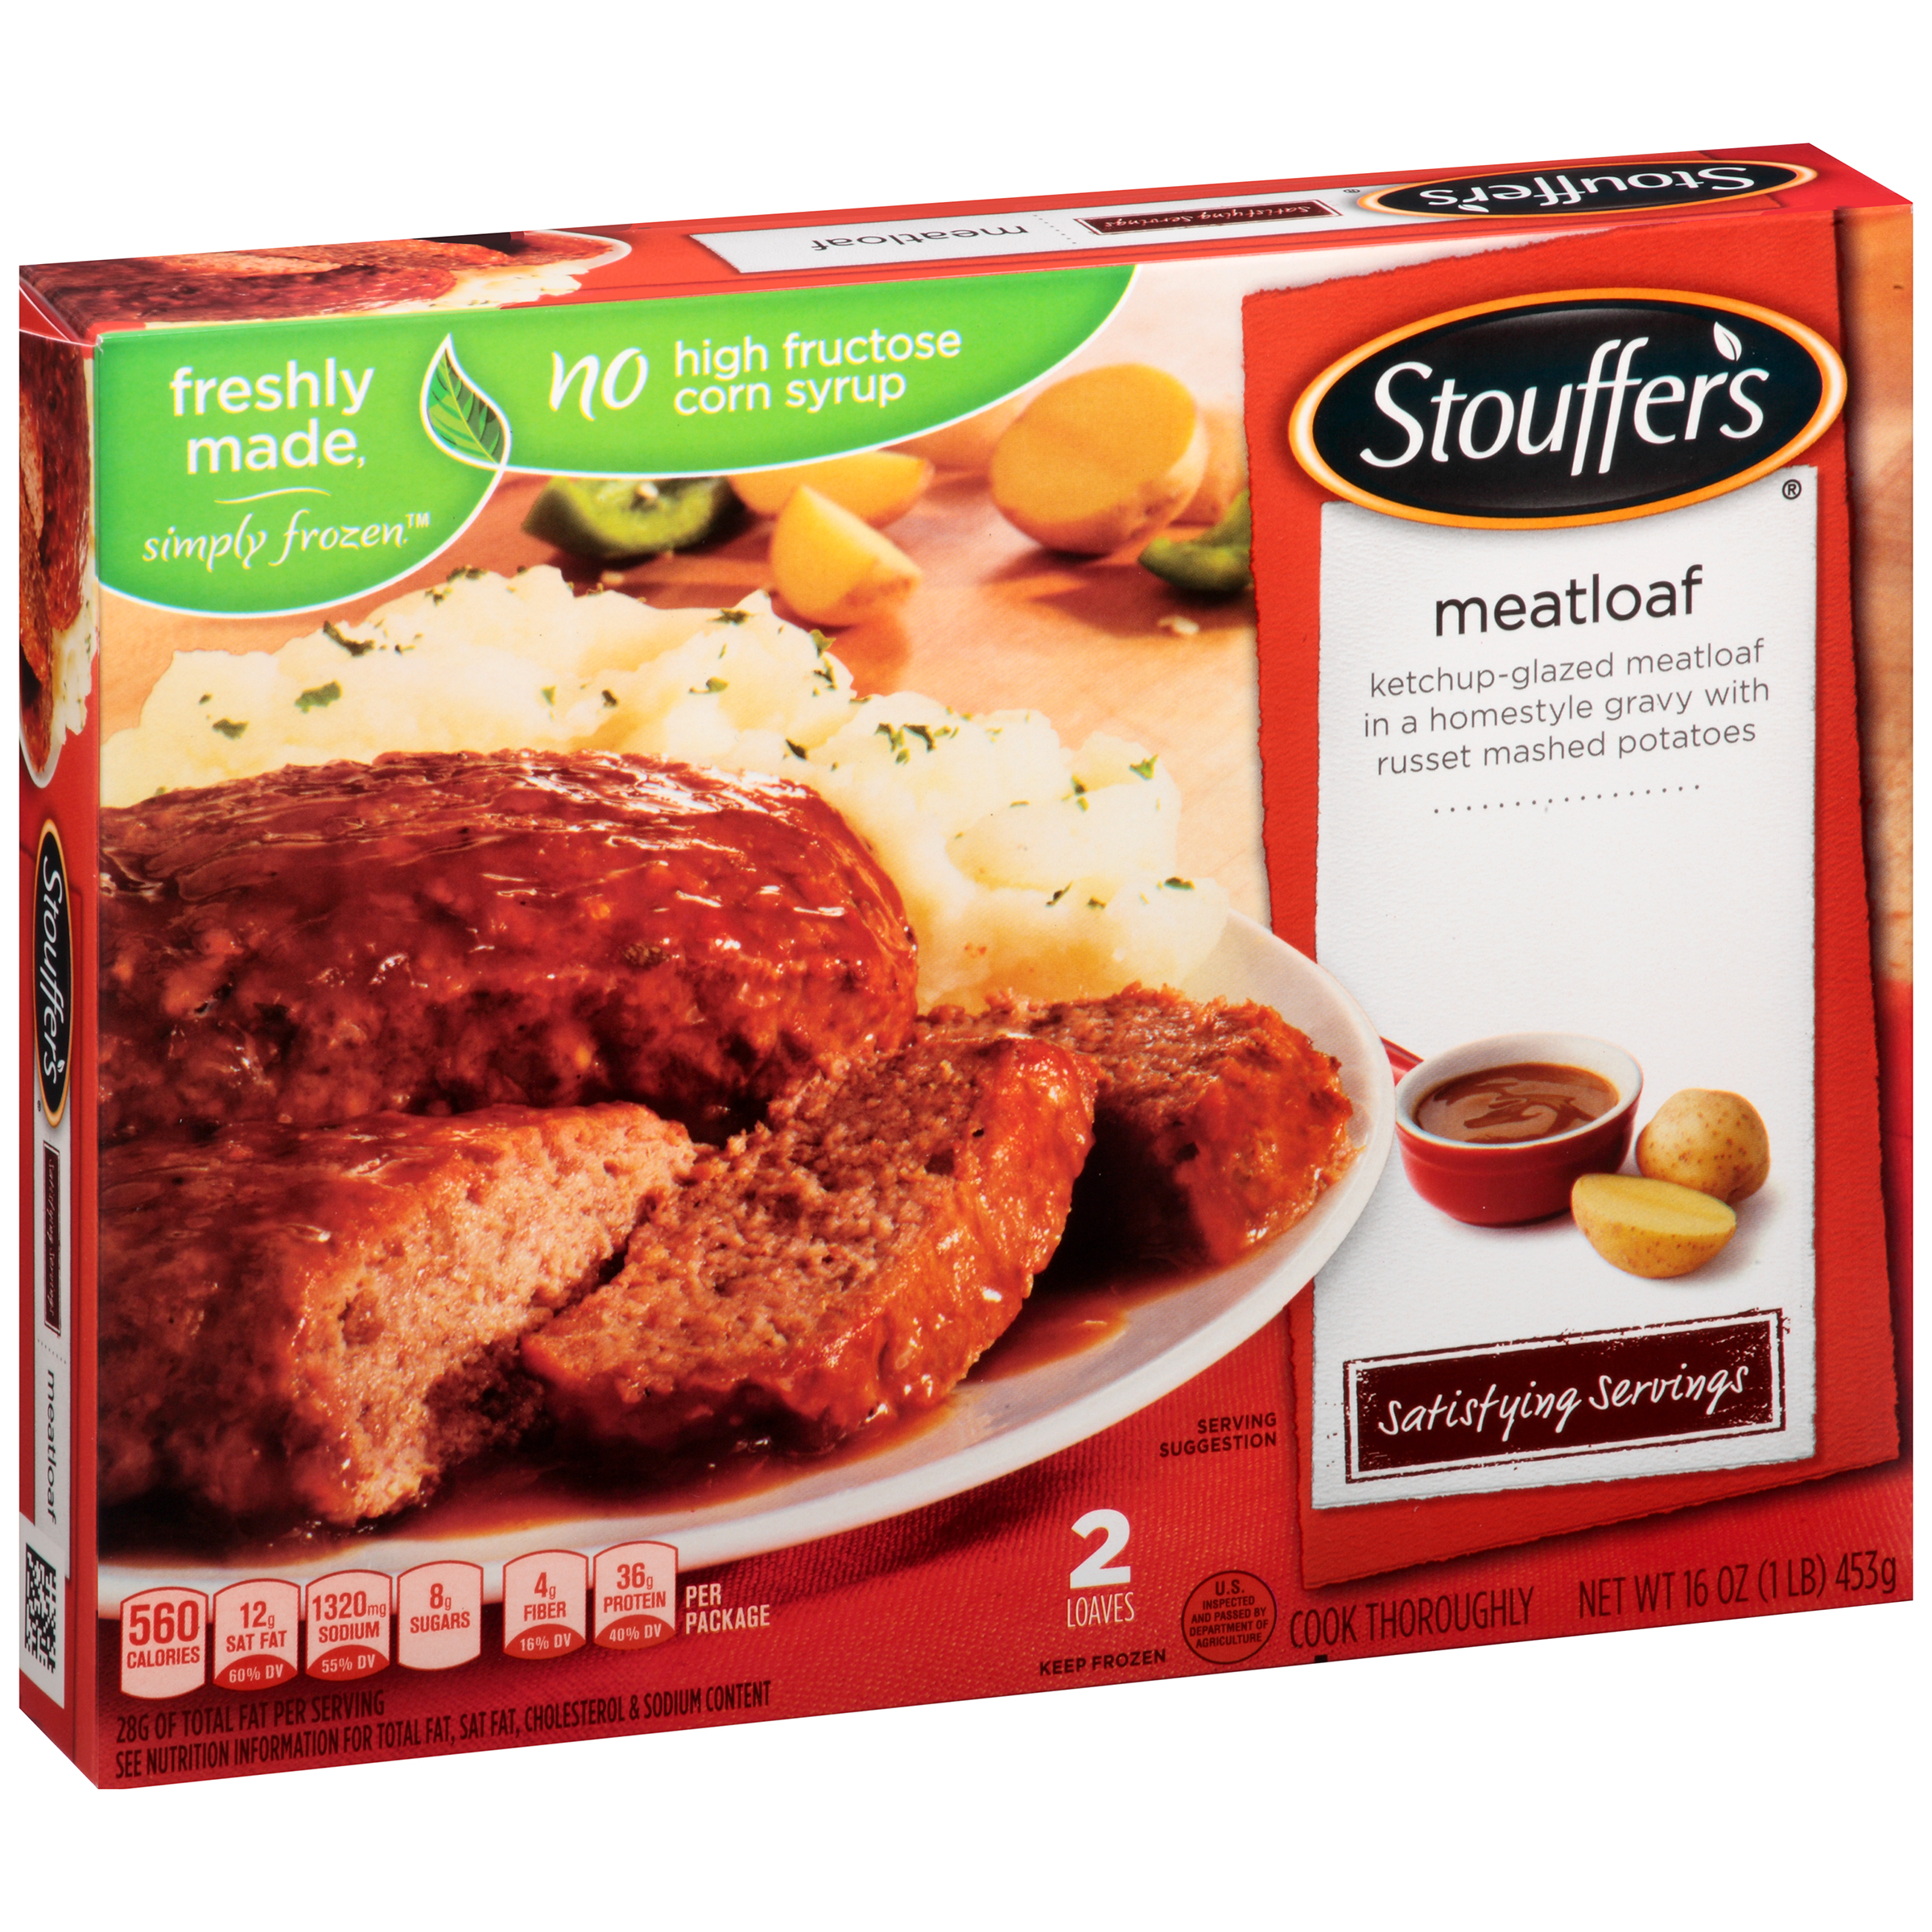 STOUFFER'S Satisfying Servings Meatloaf 16 oz. Box